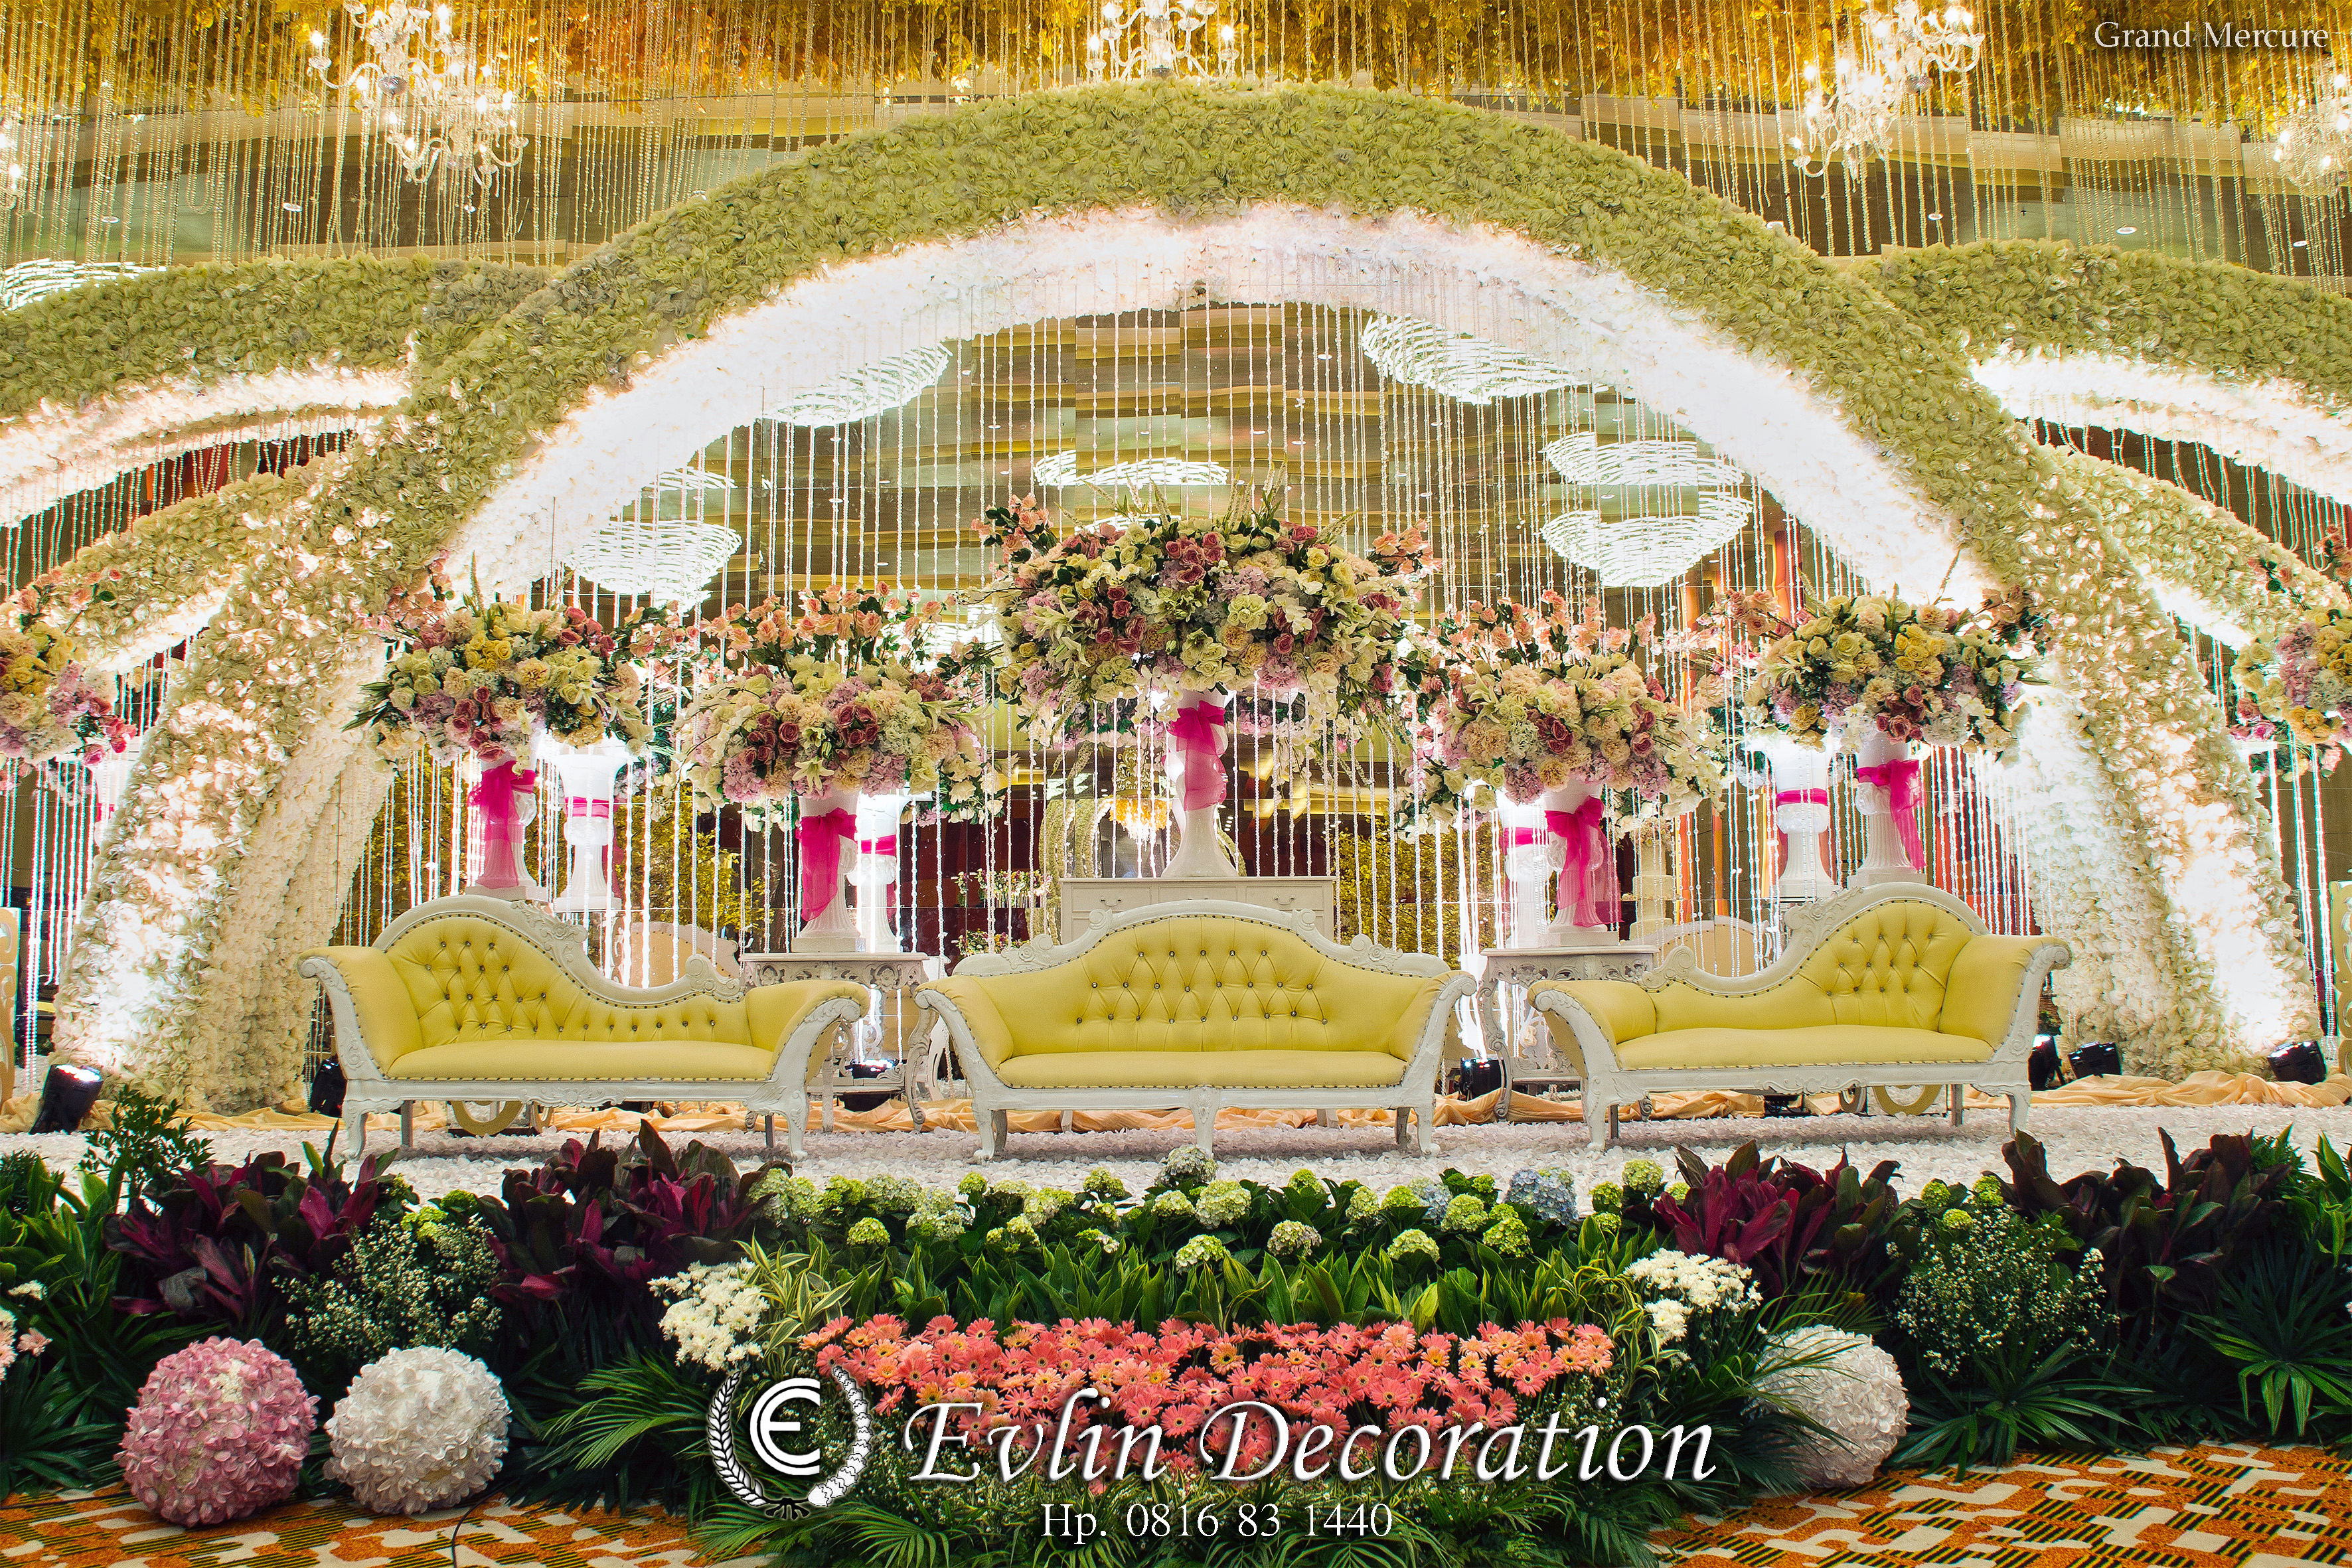 Nona manis creative planner wedding decoration lighting in nona manis creative planner wedding decoration lighting in jakarta bridestory junglespirit Choice Image